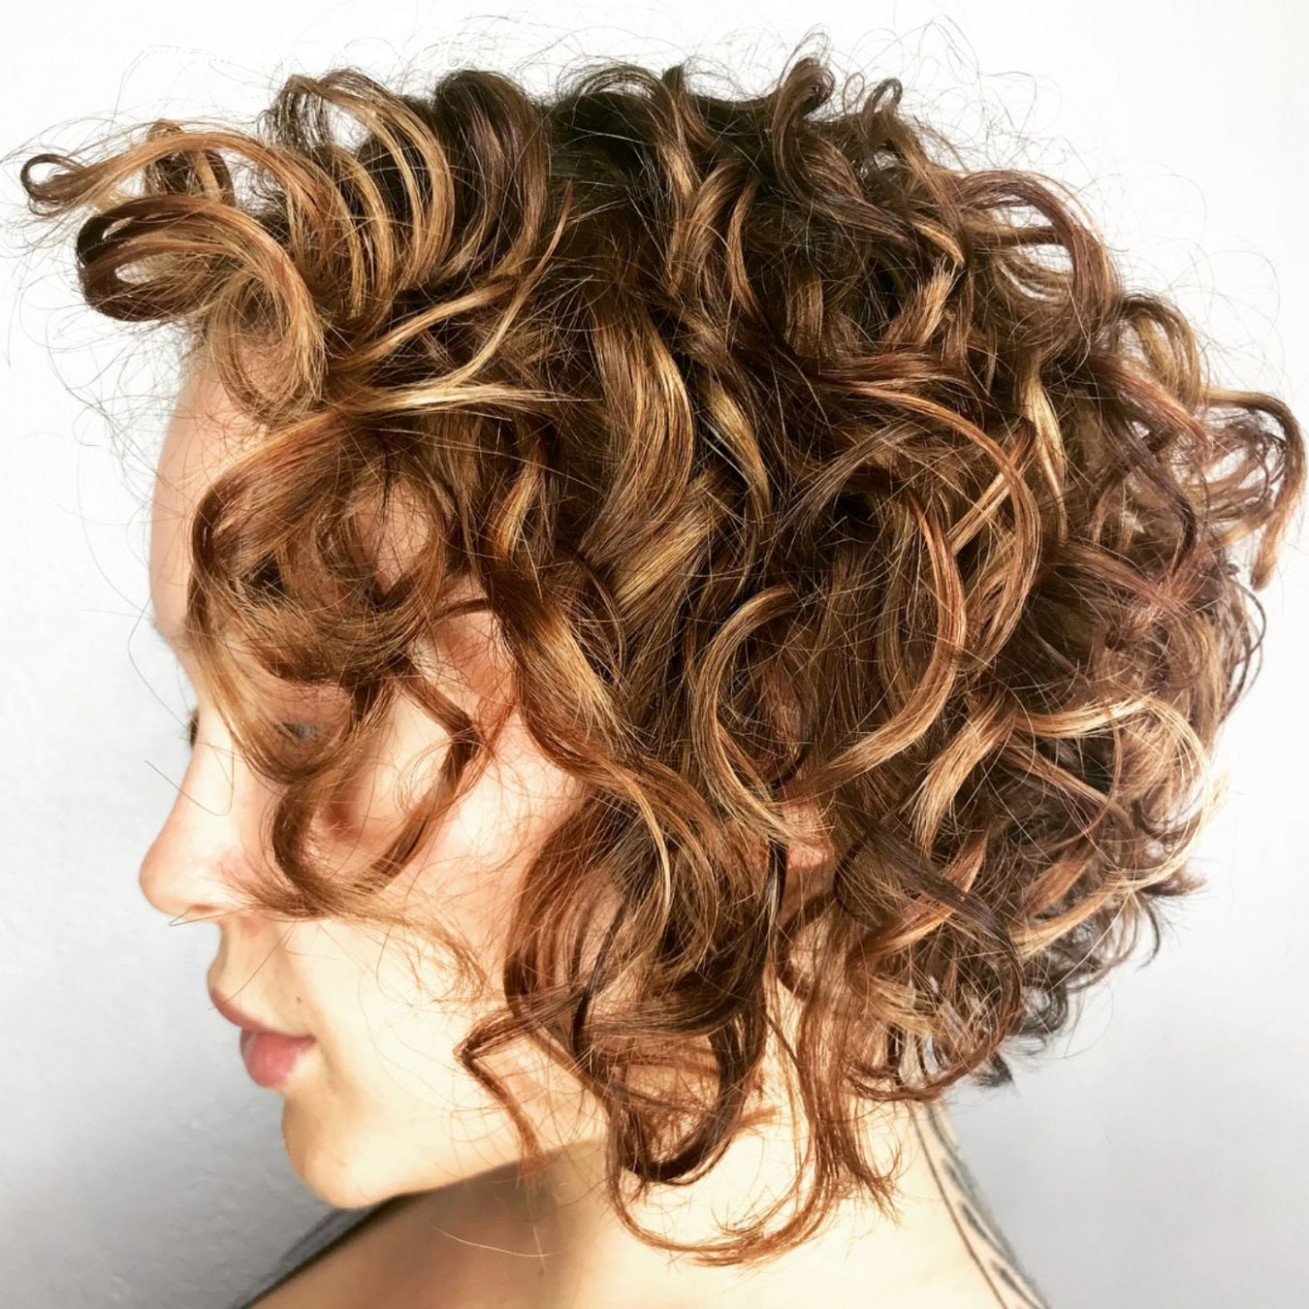 10 most delightful short wavy hairstyles | curled bob hairstyle